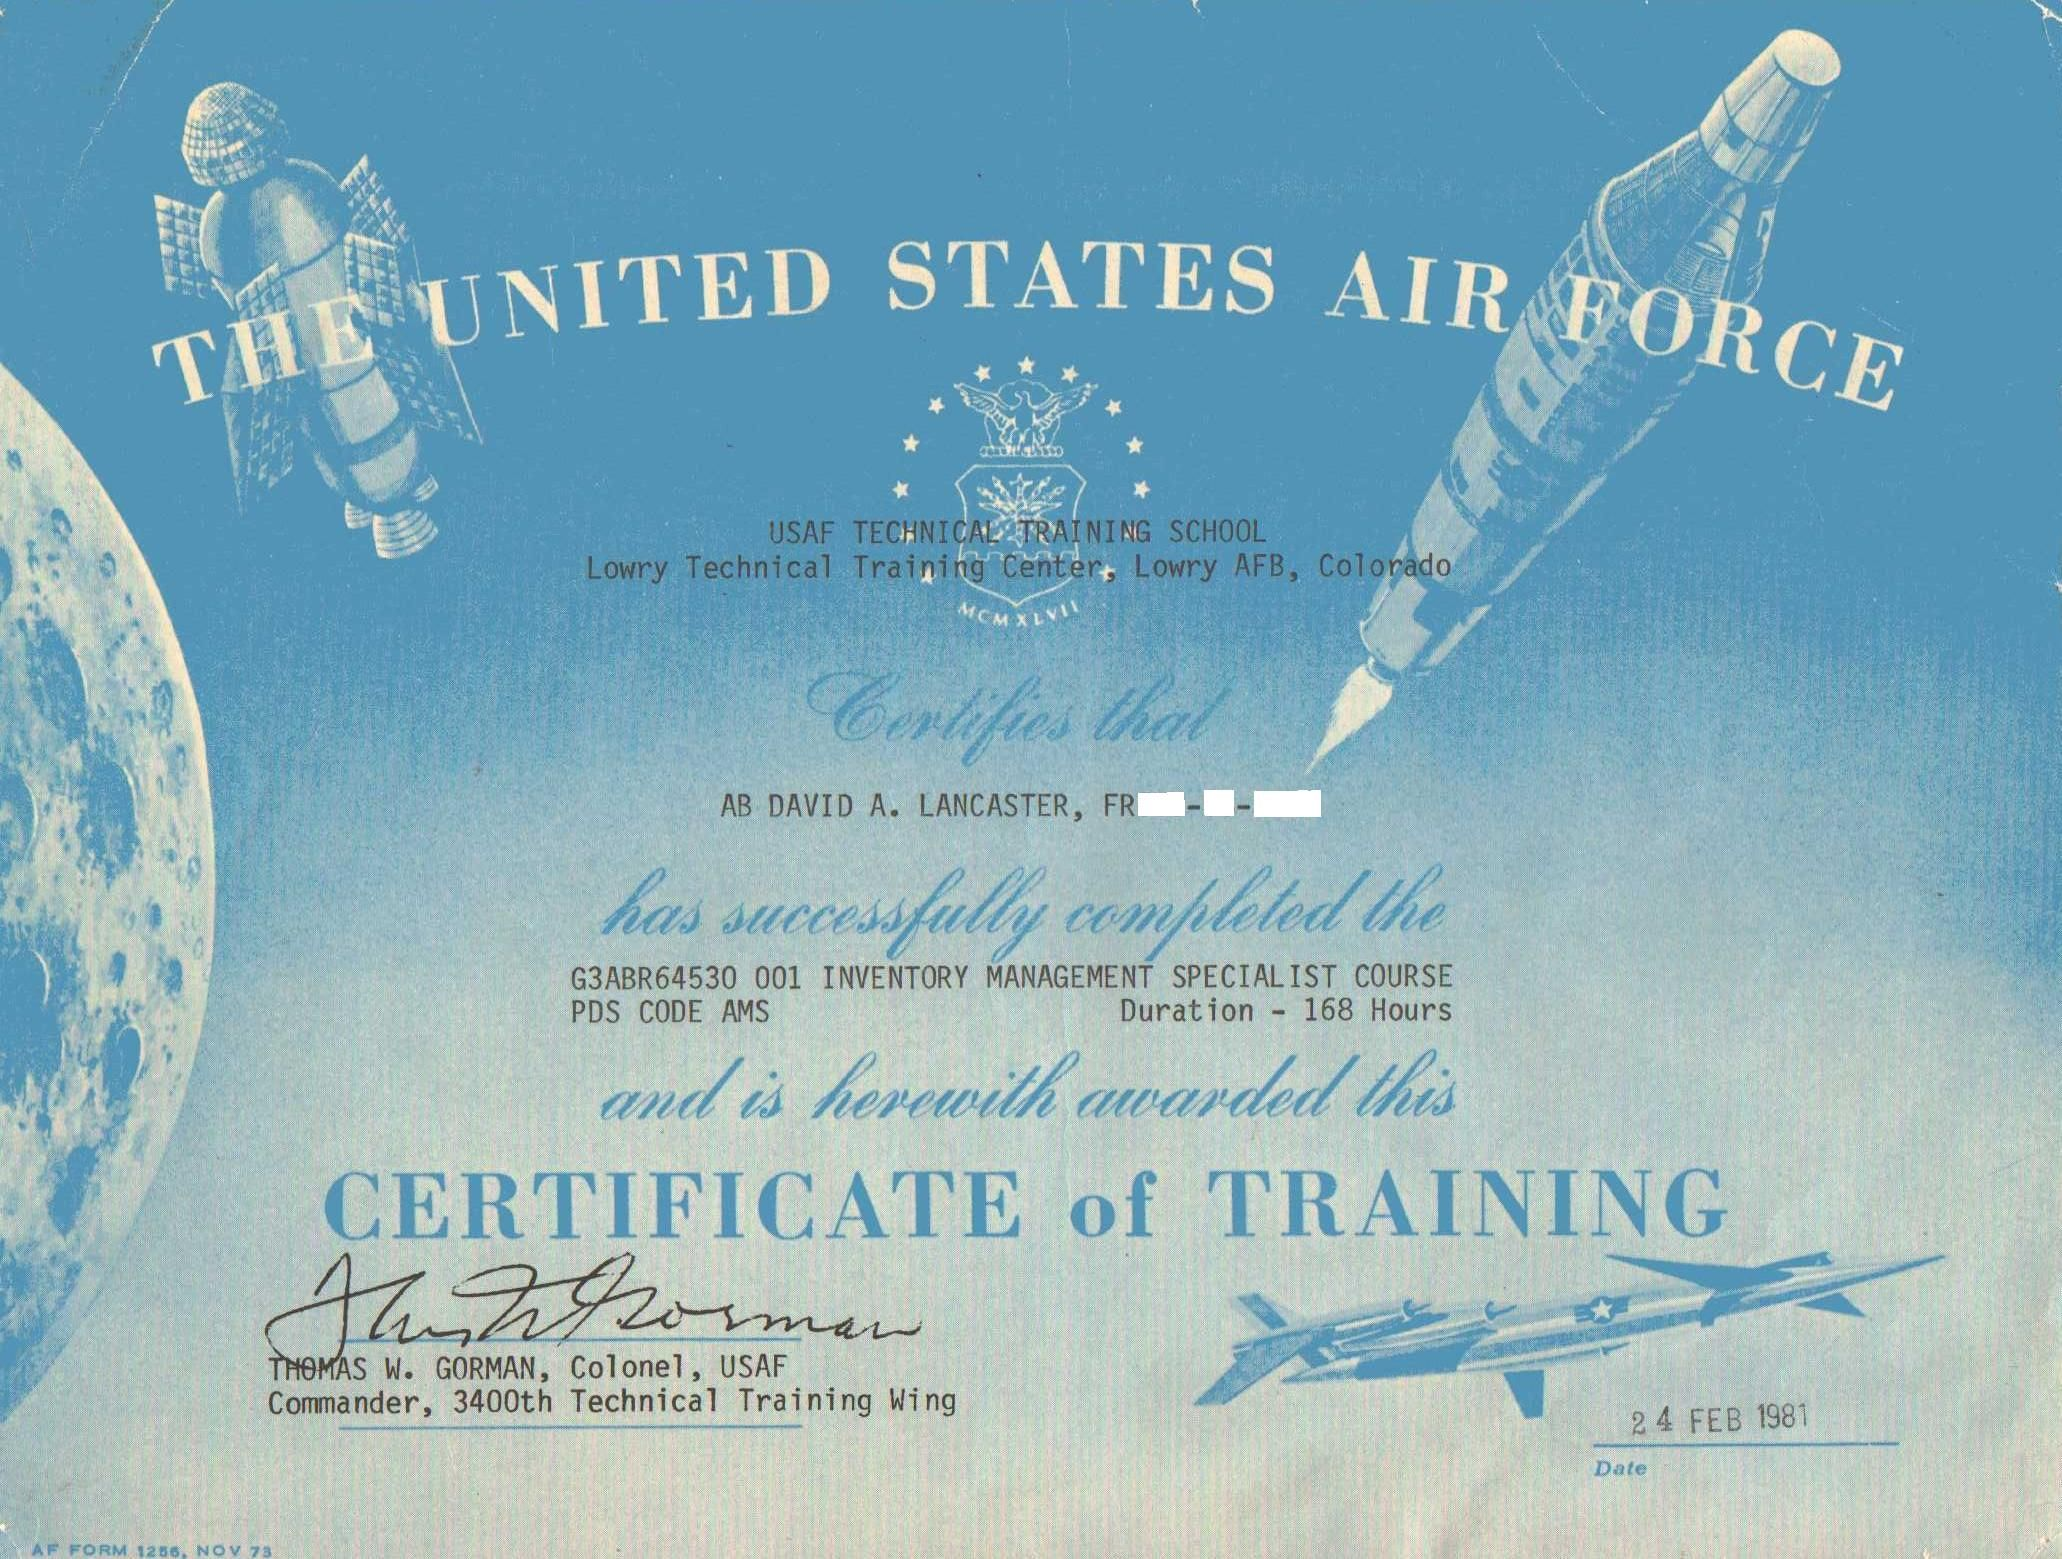 Certificate For Completing The Inventory Management Specialist